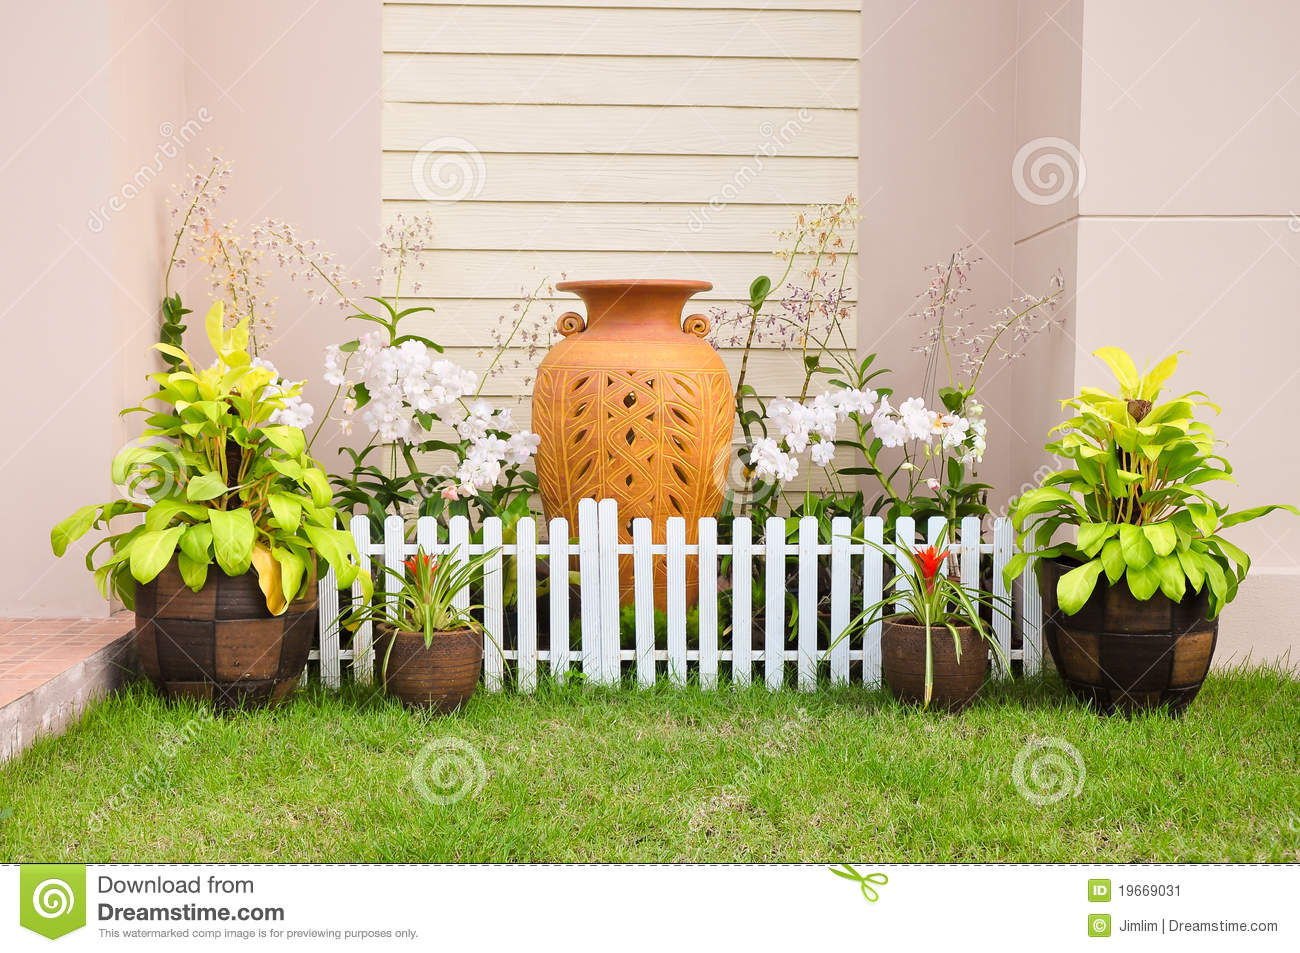 Amazing Small House Fence Small Home Garden Stock Image Image 19669031 Largest Home Design Picture Inspirations Pitcheantrous